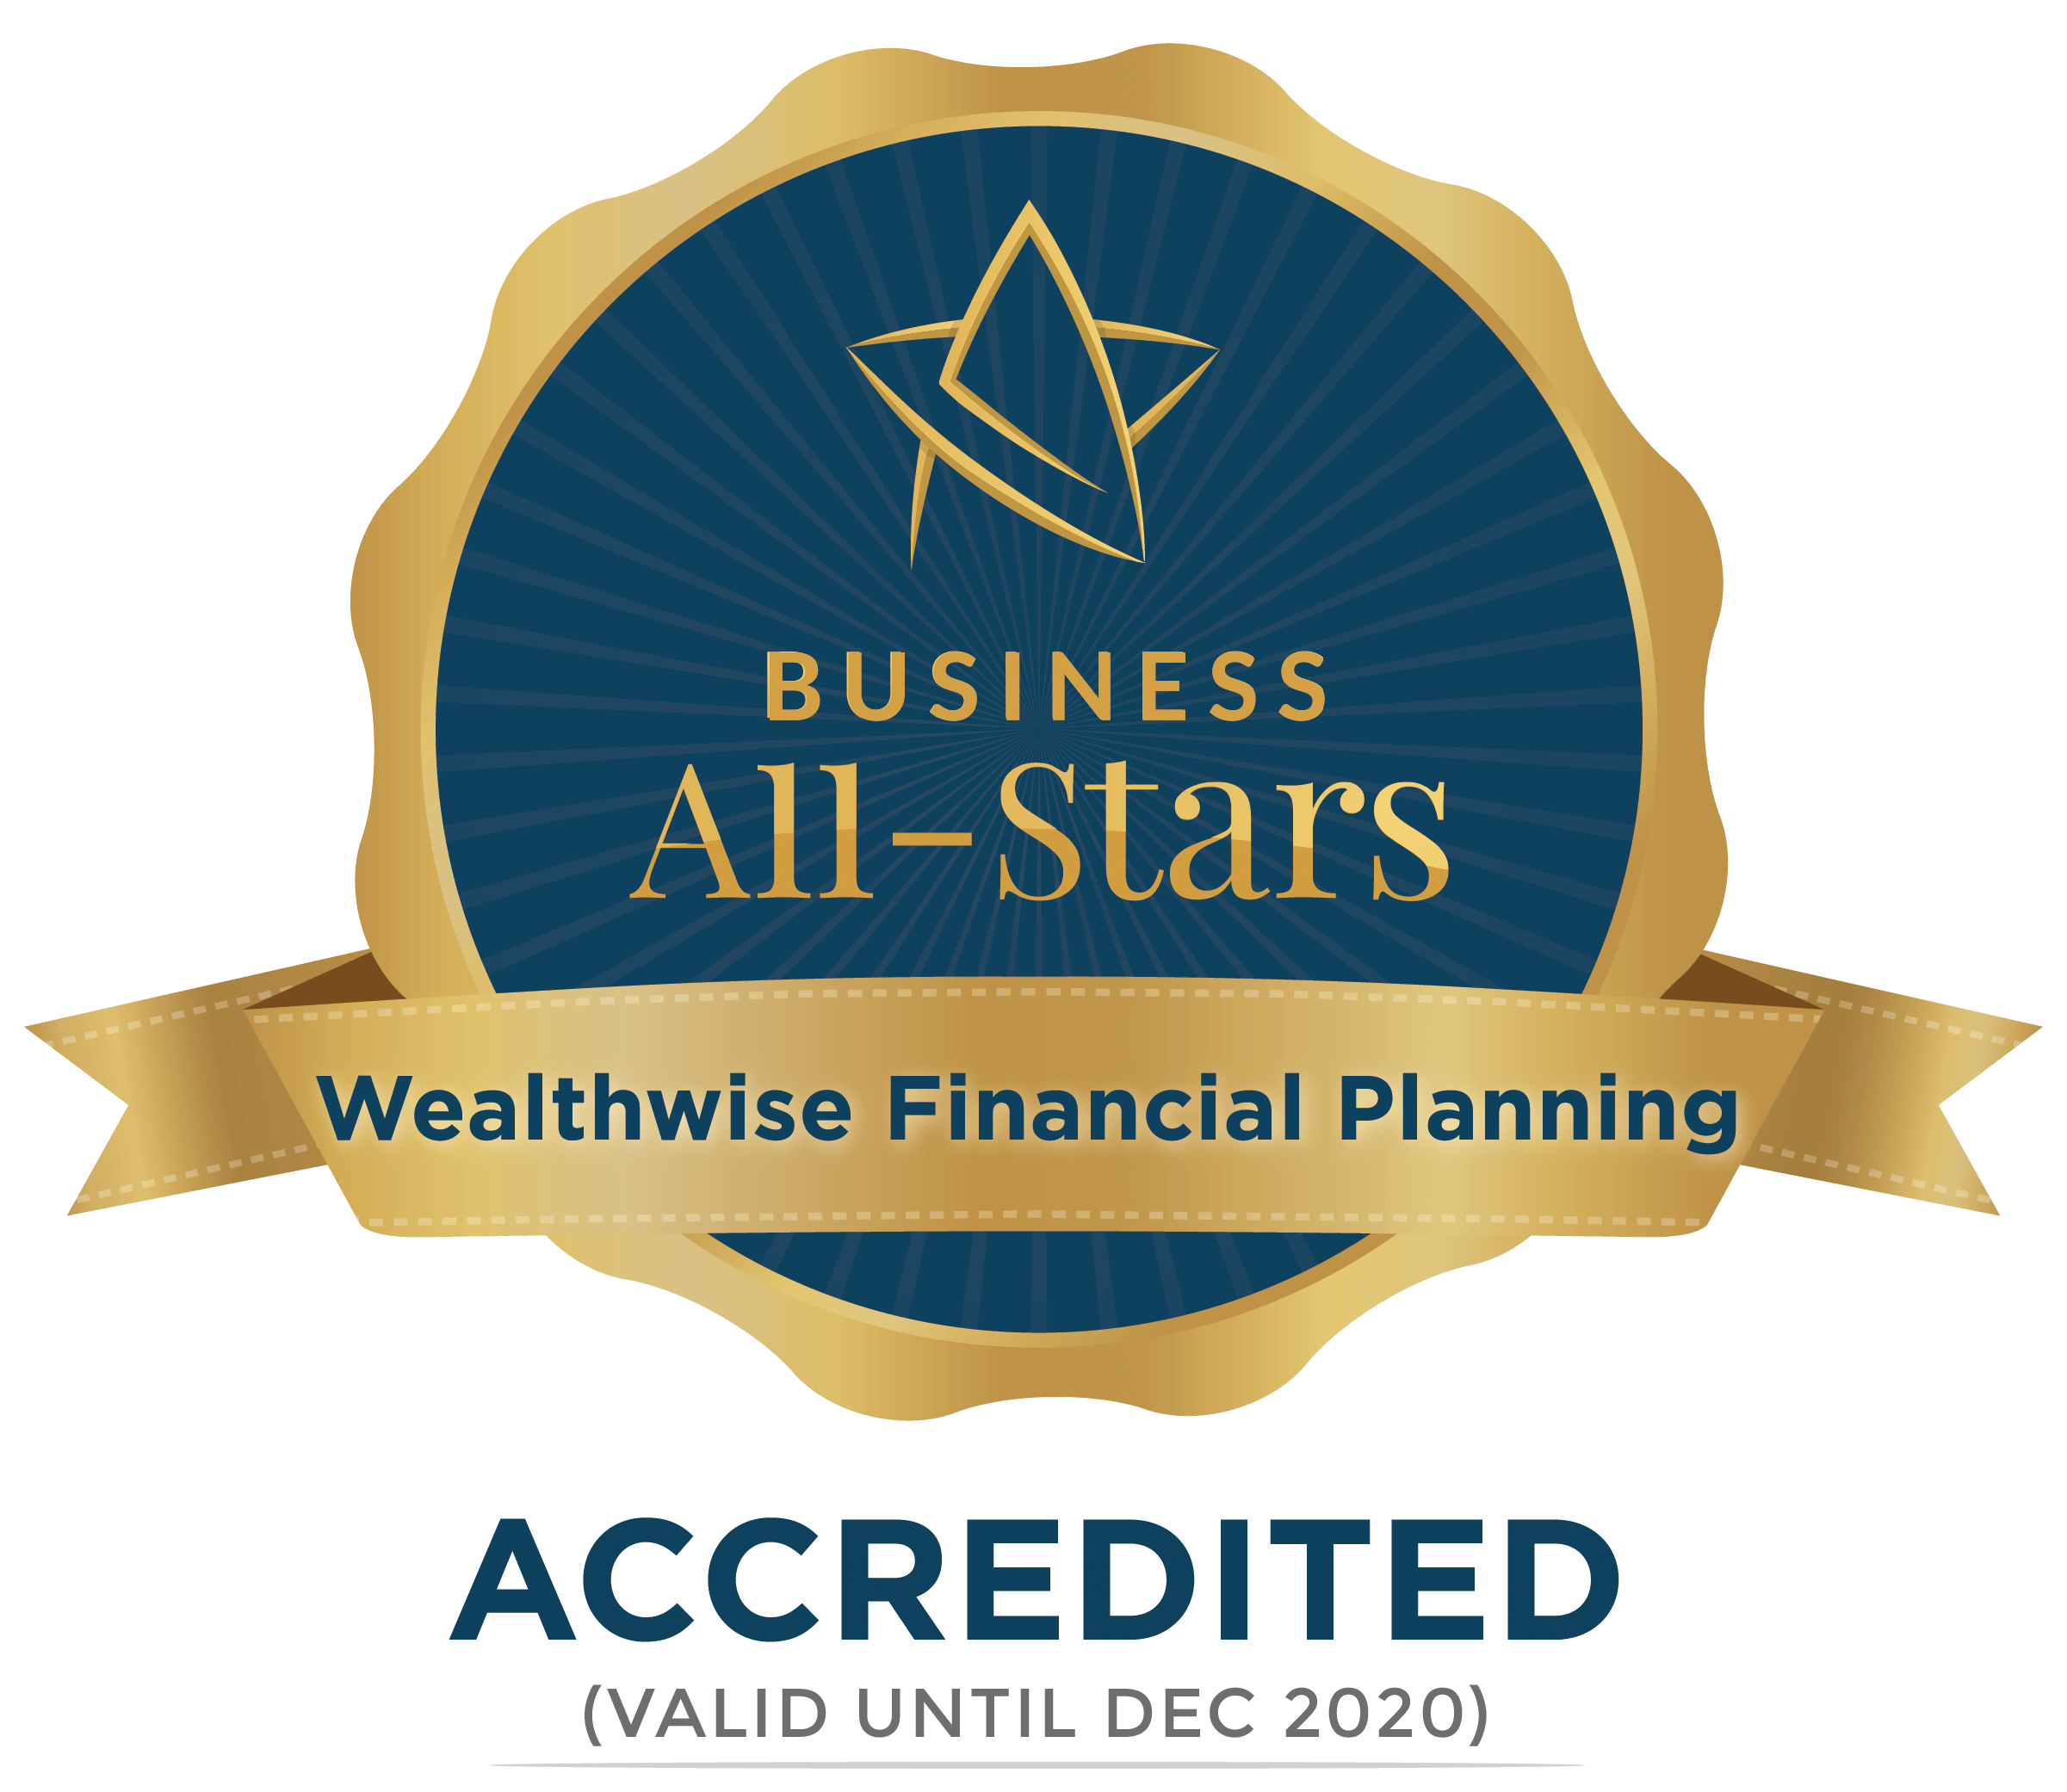 Wealthwise Financial Planning - Business All-Stars Accreditation